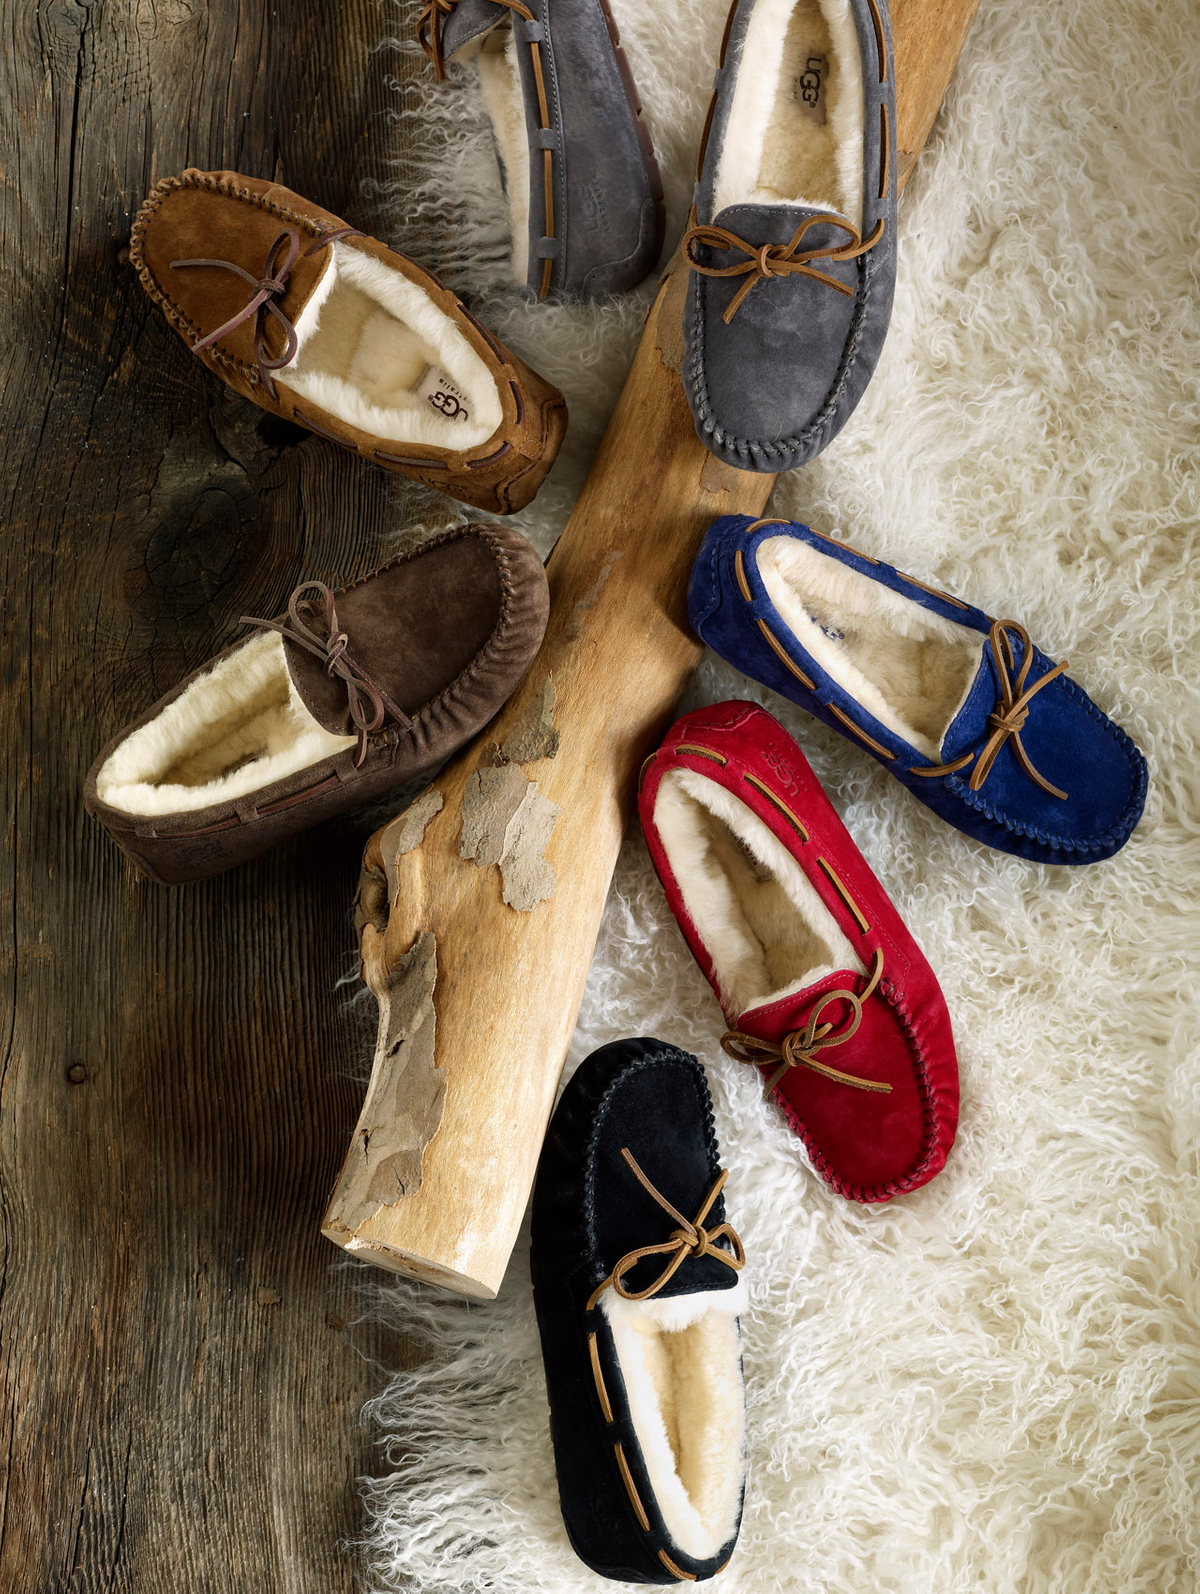 ChristopherWhite_Ugg_Fall_2010_2.jpg